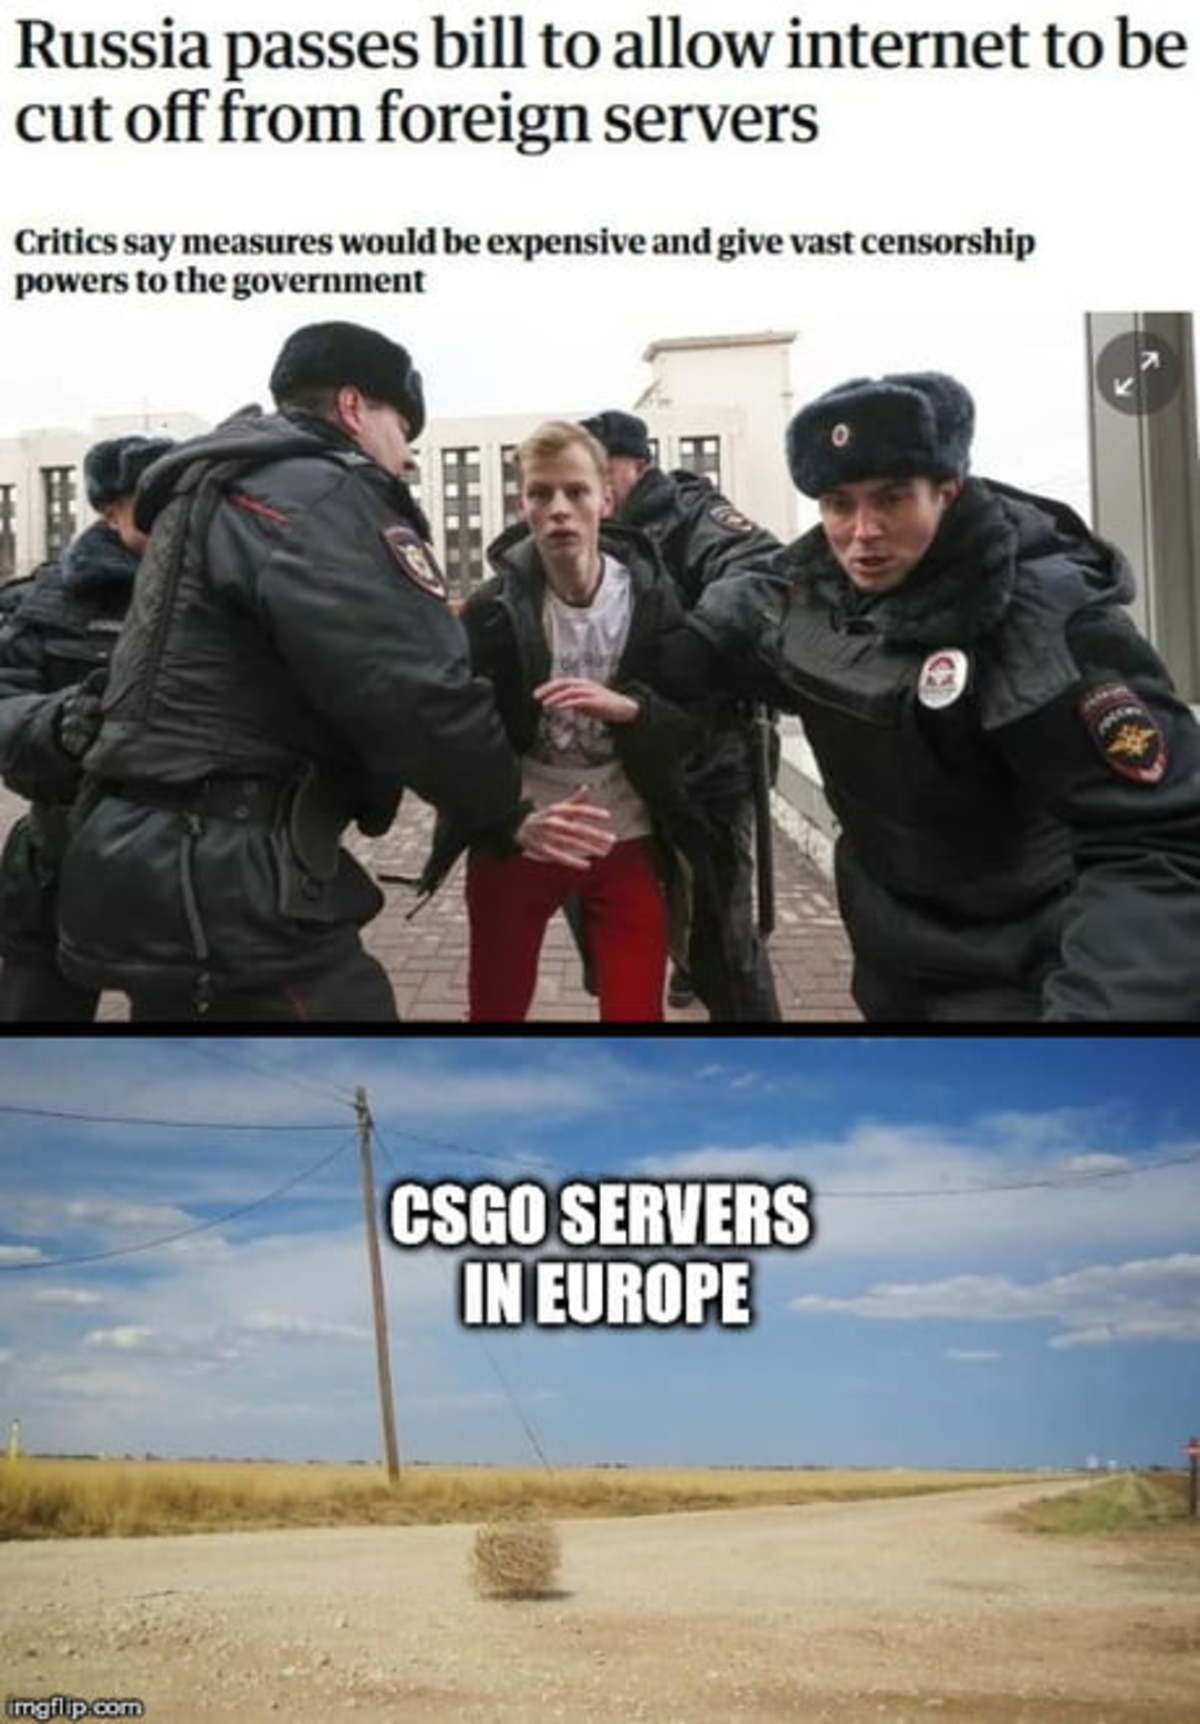 Memes spread faster than news.. .. I was more expecting this for the EU servers reaction